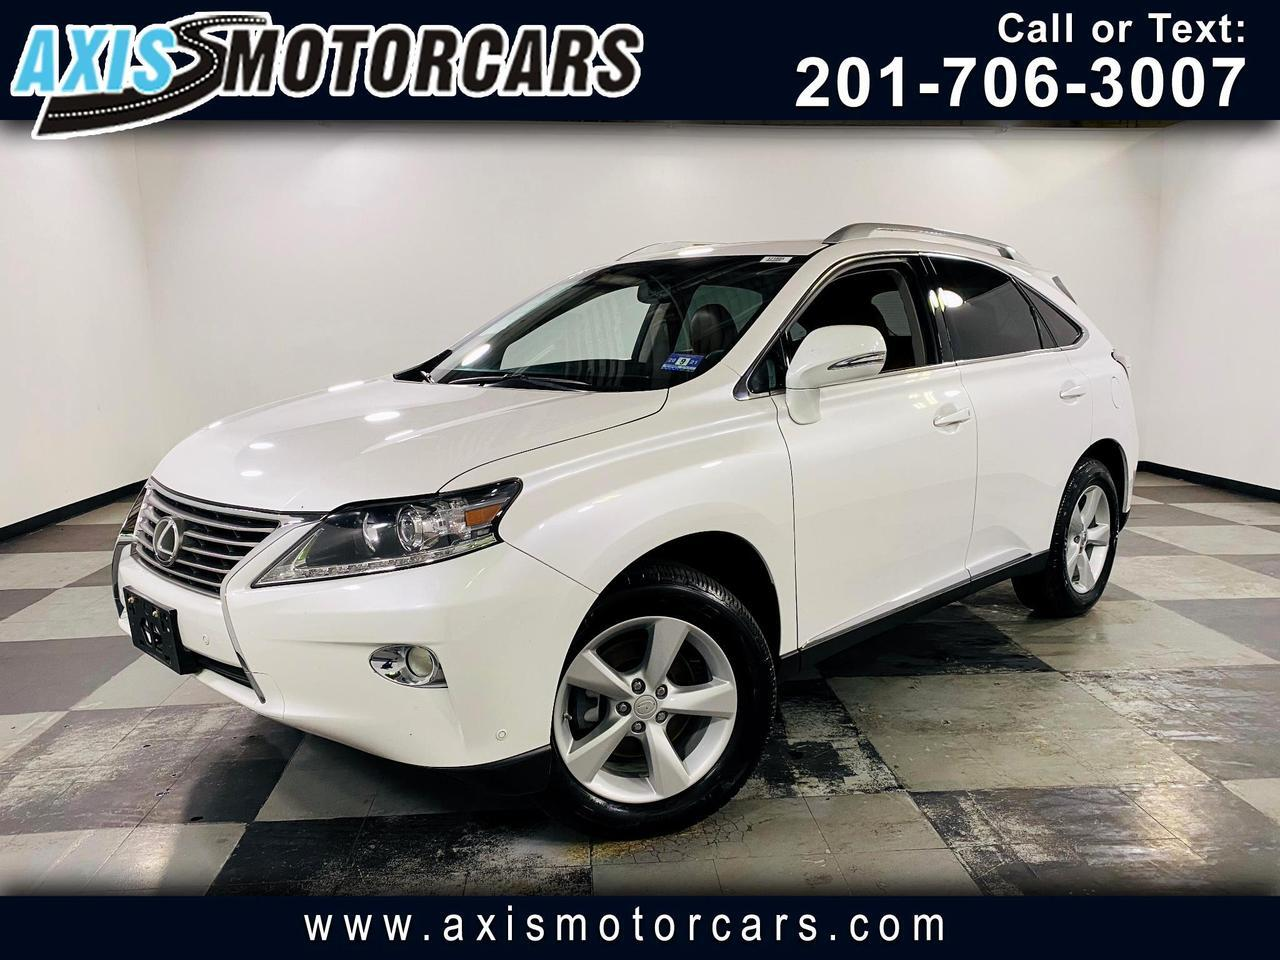 2013 Lexus RX 350 AWD 4dr Jersey City NJ